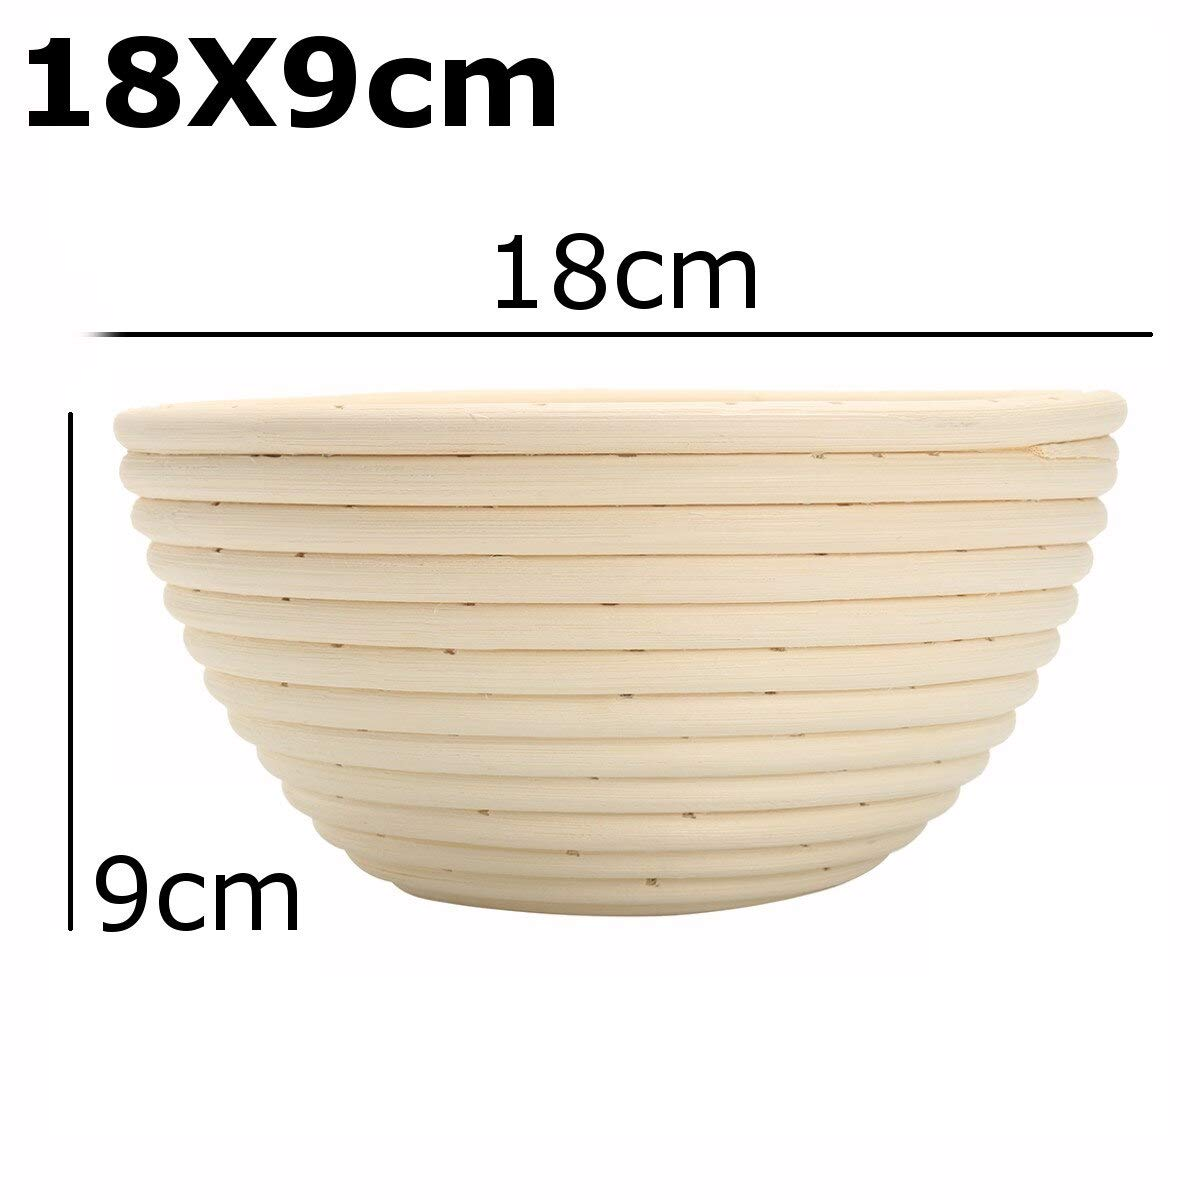 Best Quality - Storage Baskets - Bread Basket Banneton Brotform Rattan Proofing Basket Liner Round Oval Fruit Tray Dough Food Storage Container Organizer Basket - by GTIN - 1 PCs by HIBISCUS. (Image #6)